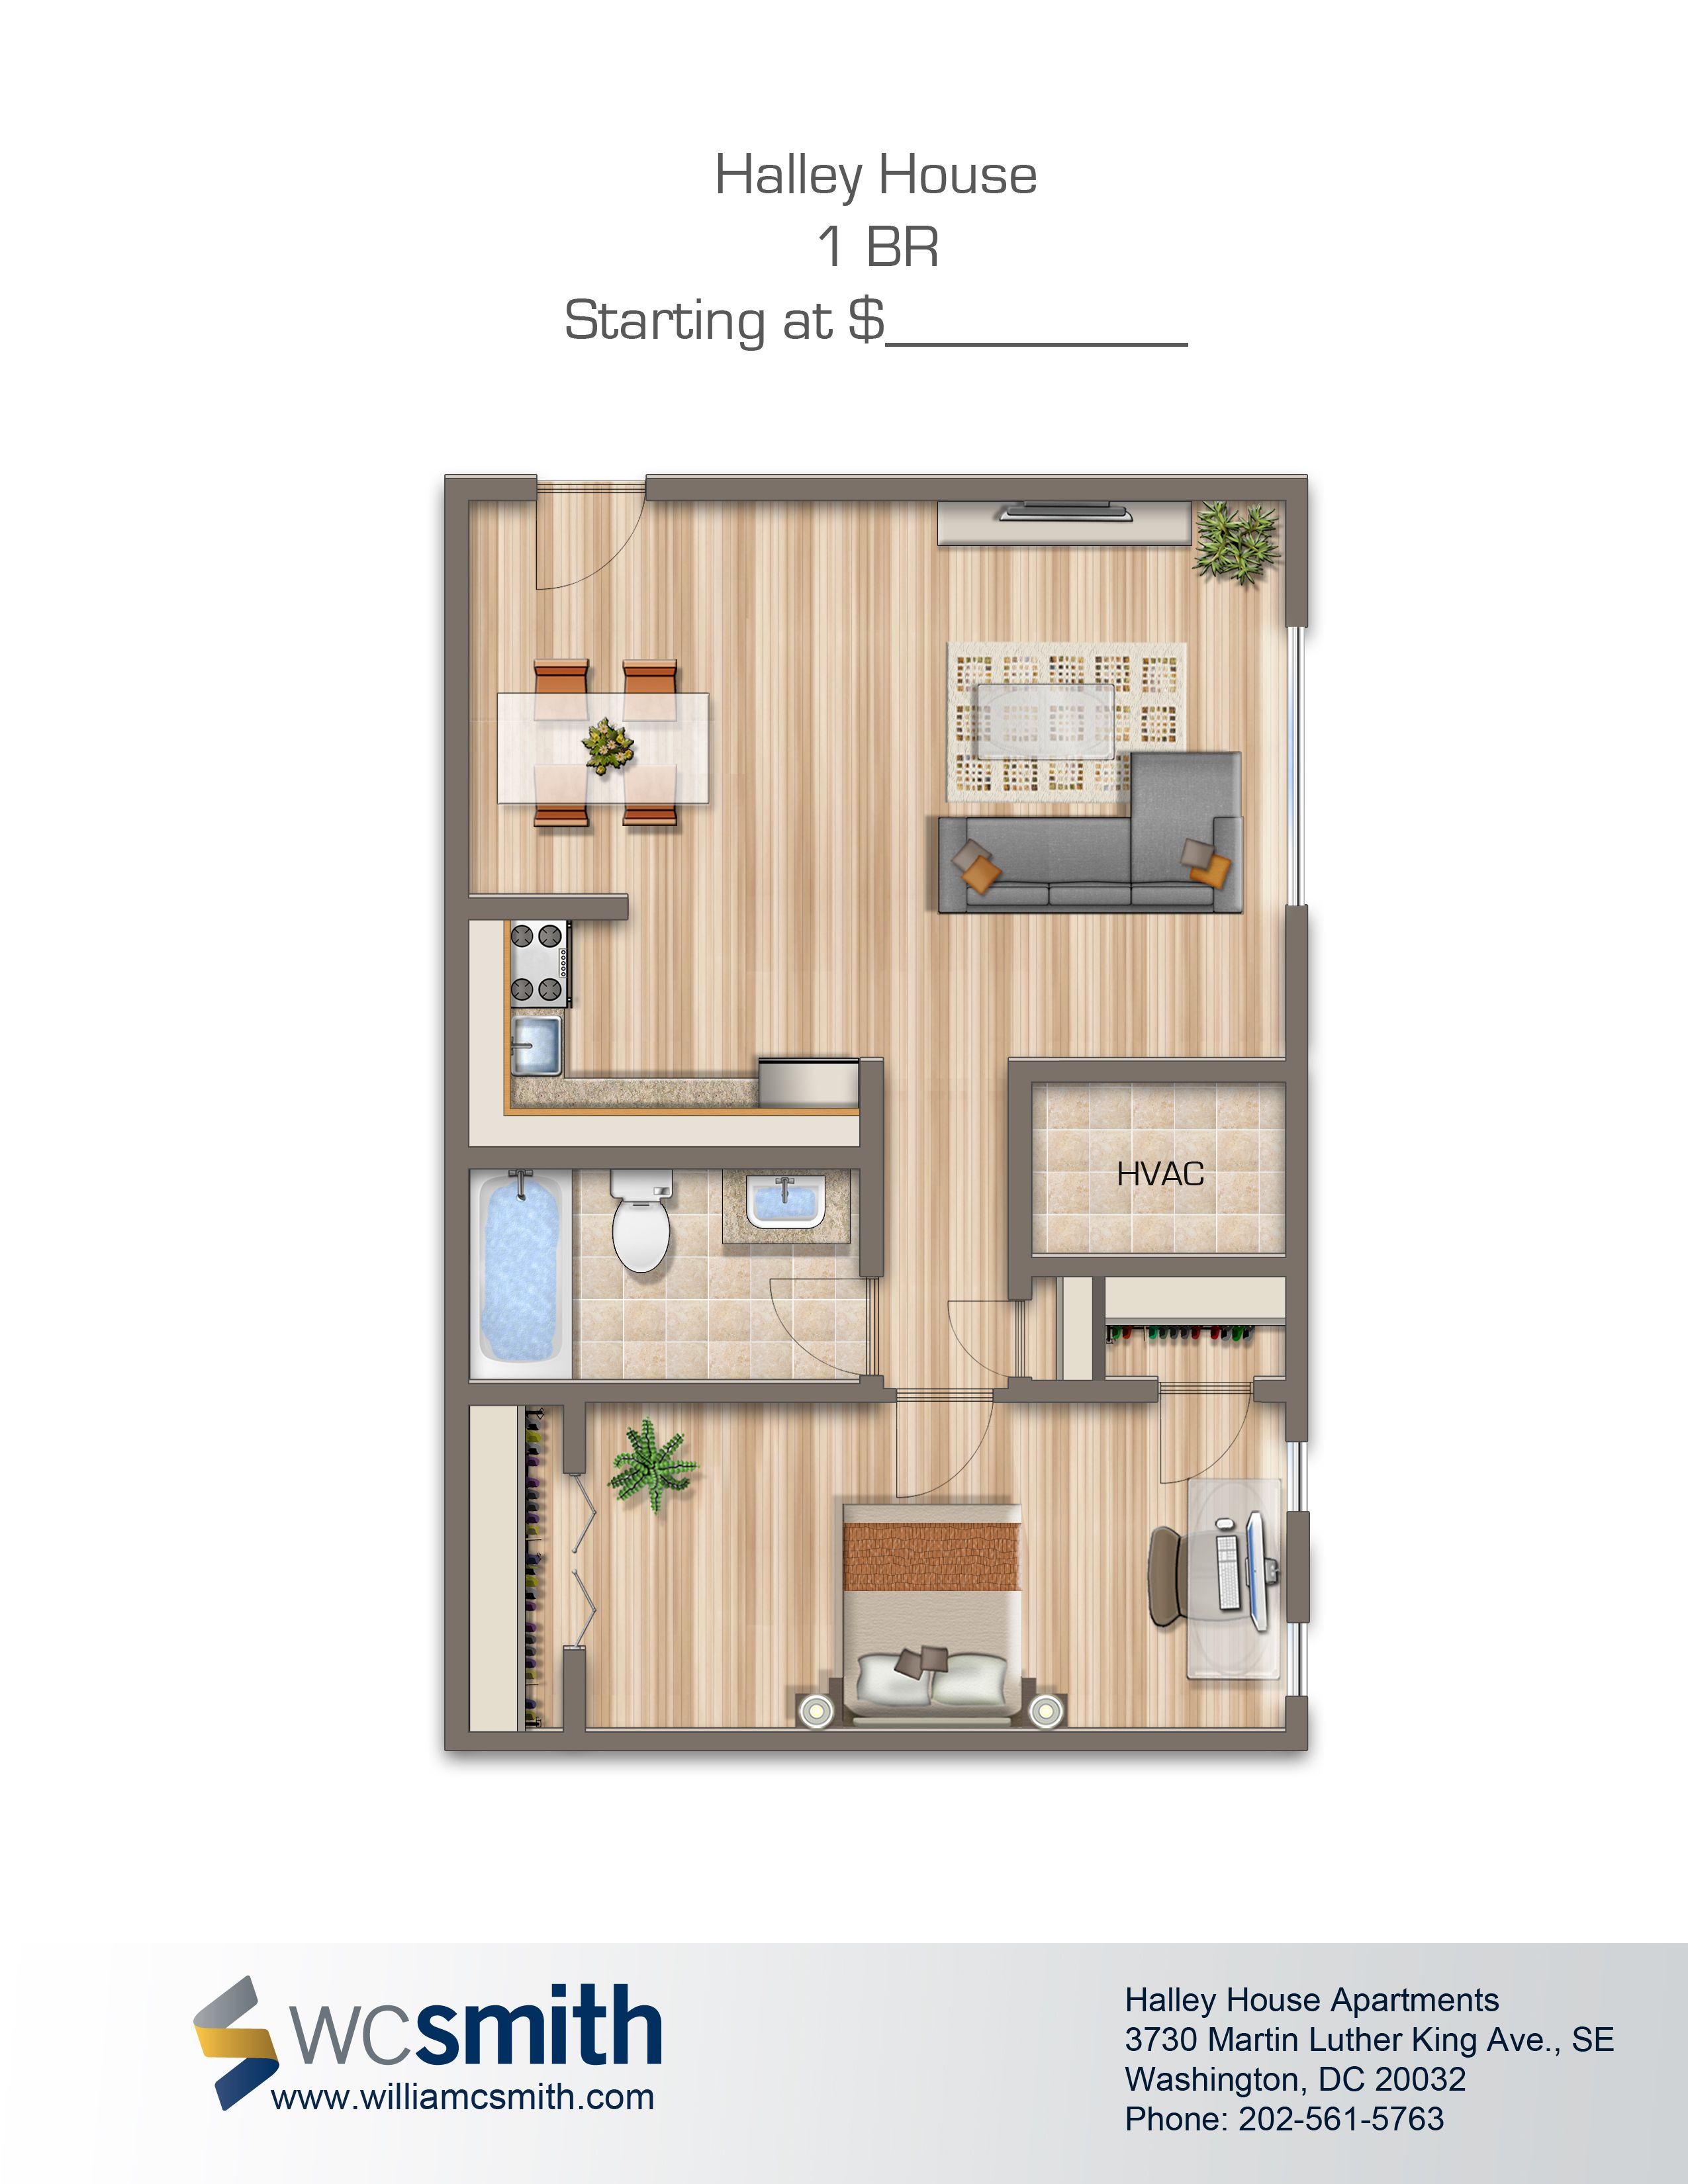 One Bedroom Floor Plan | Halley House In Southeast Washington DC | WC Smith  #Apartments